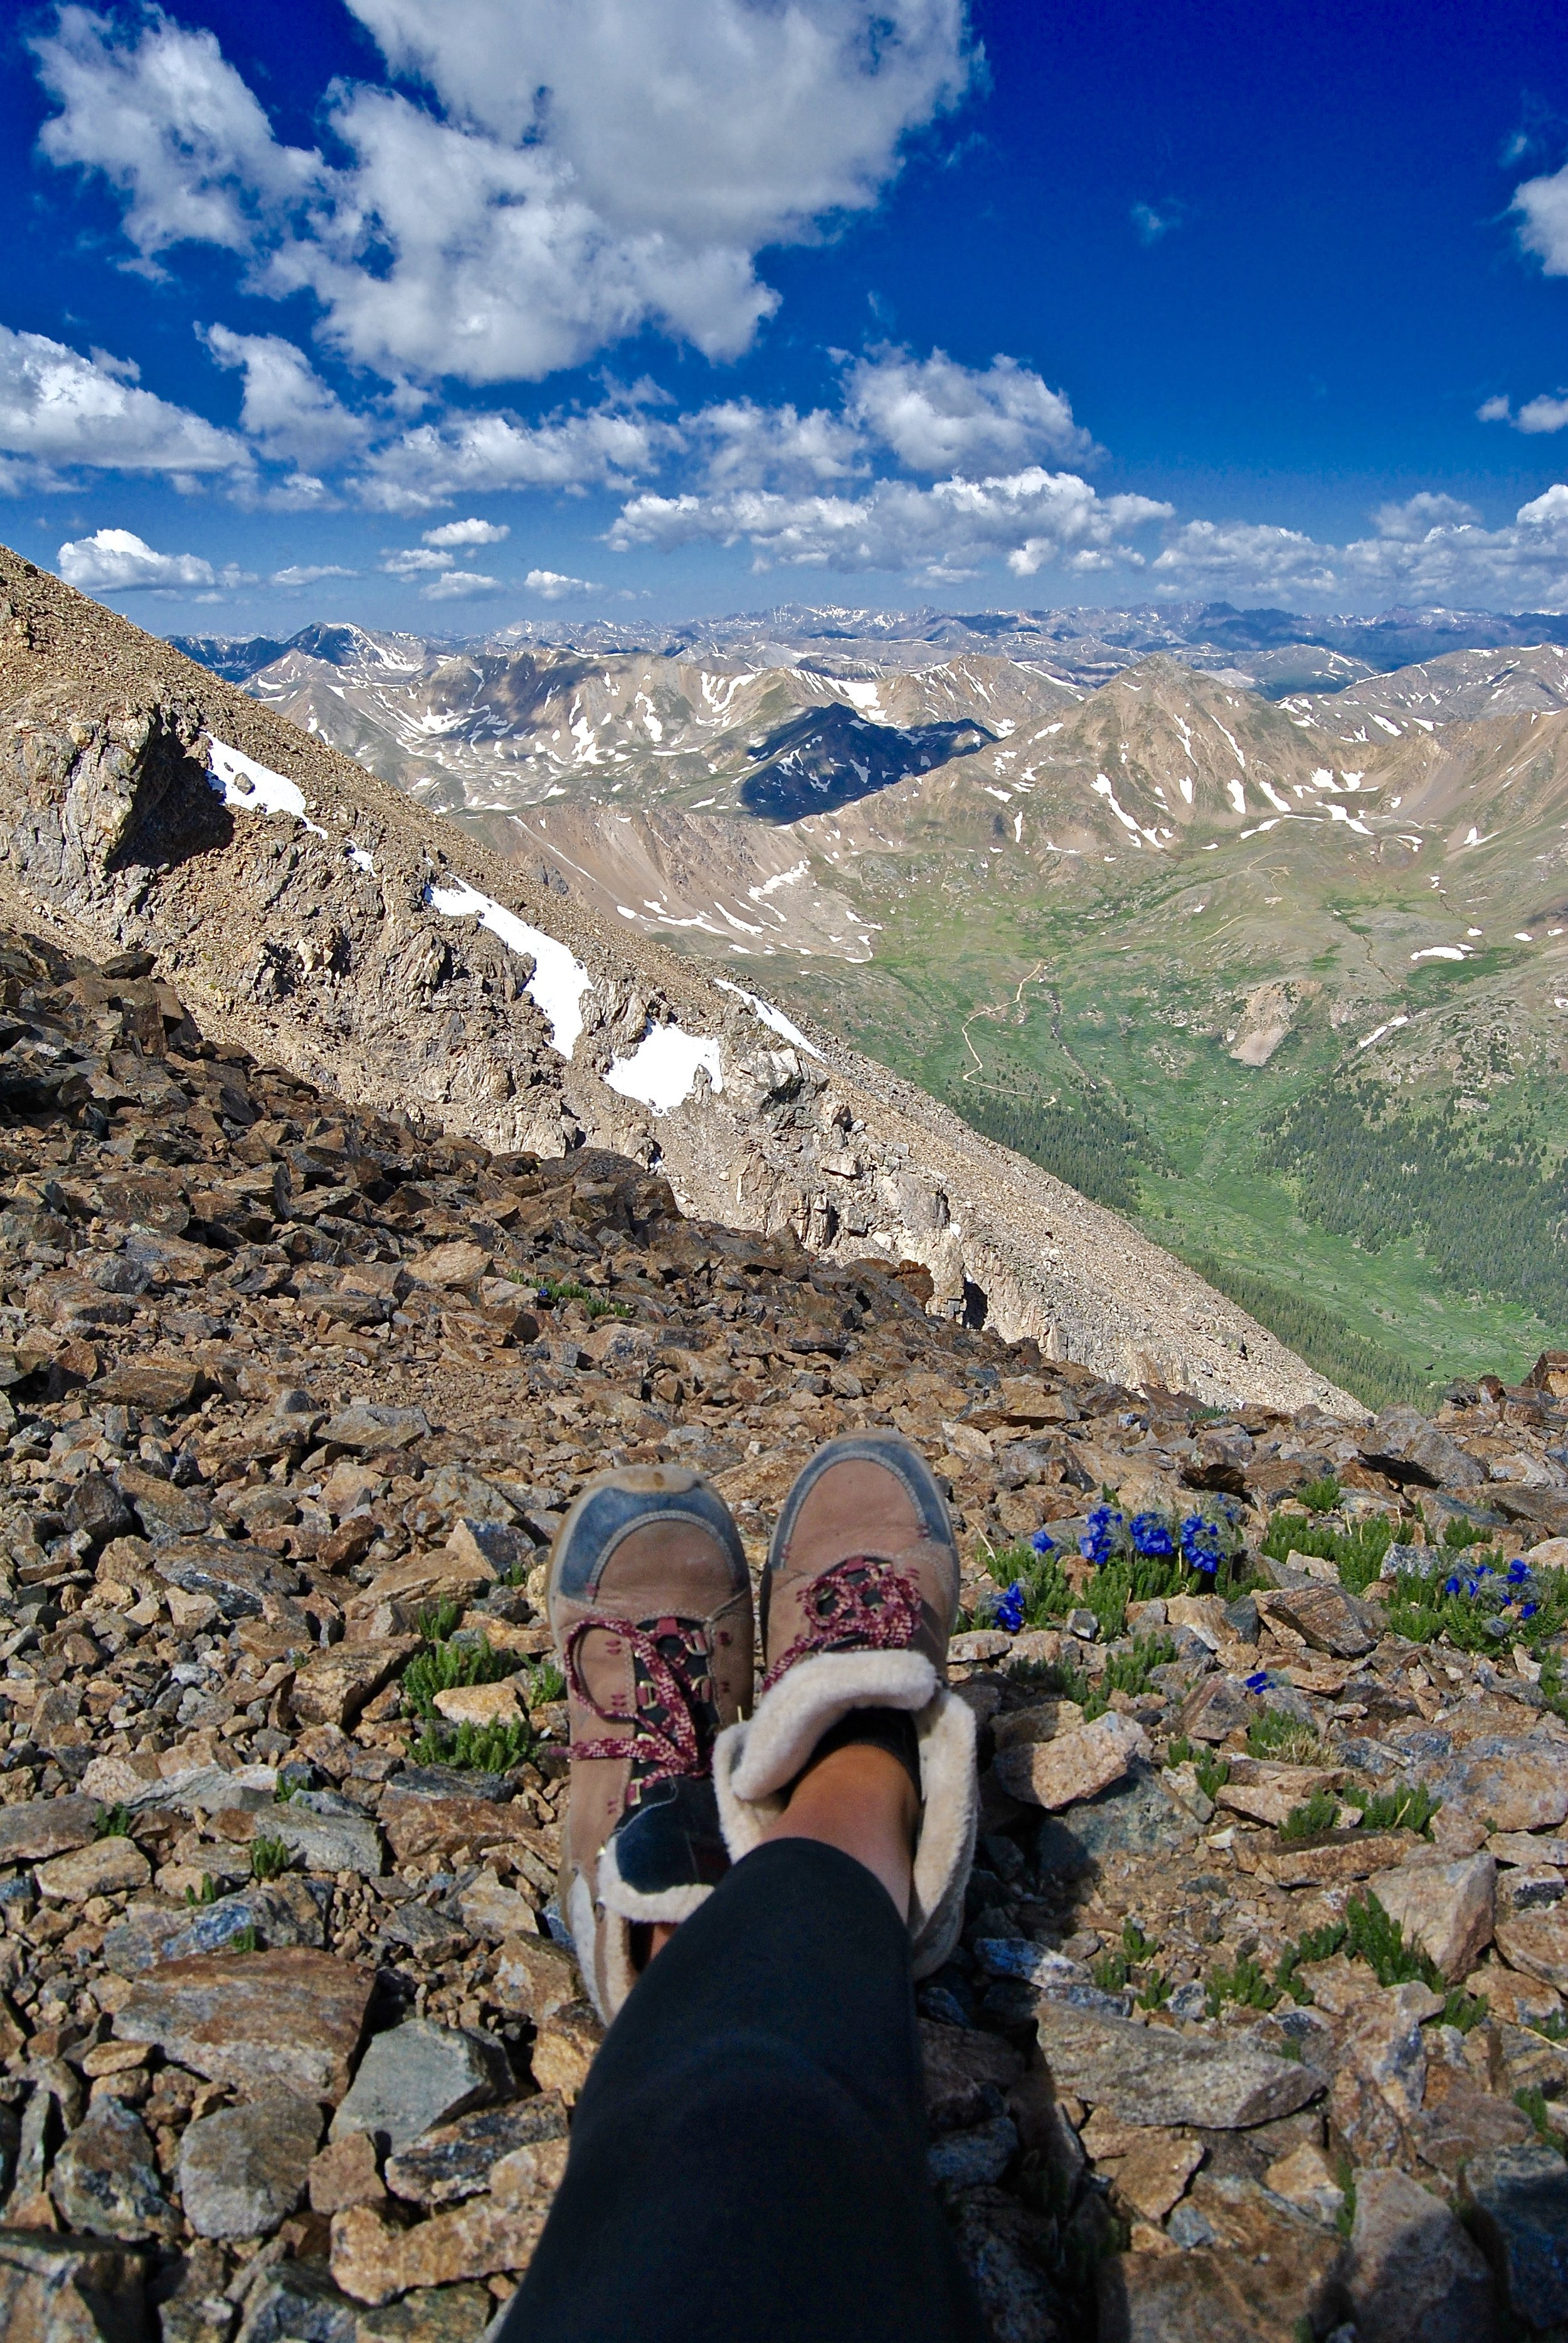 Glad I took my winter hiking boots - it was still cold, even in late June